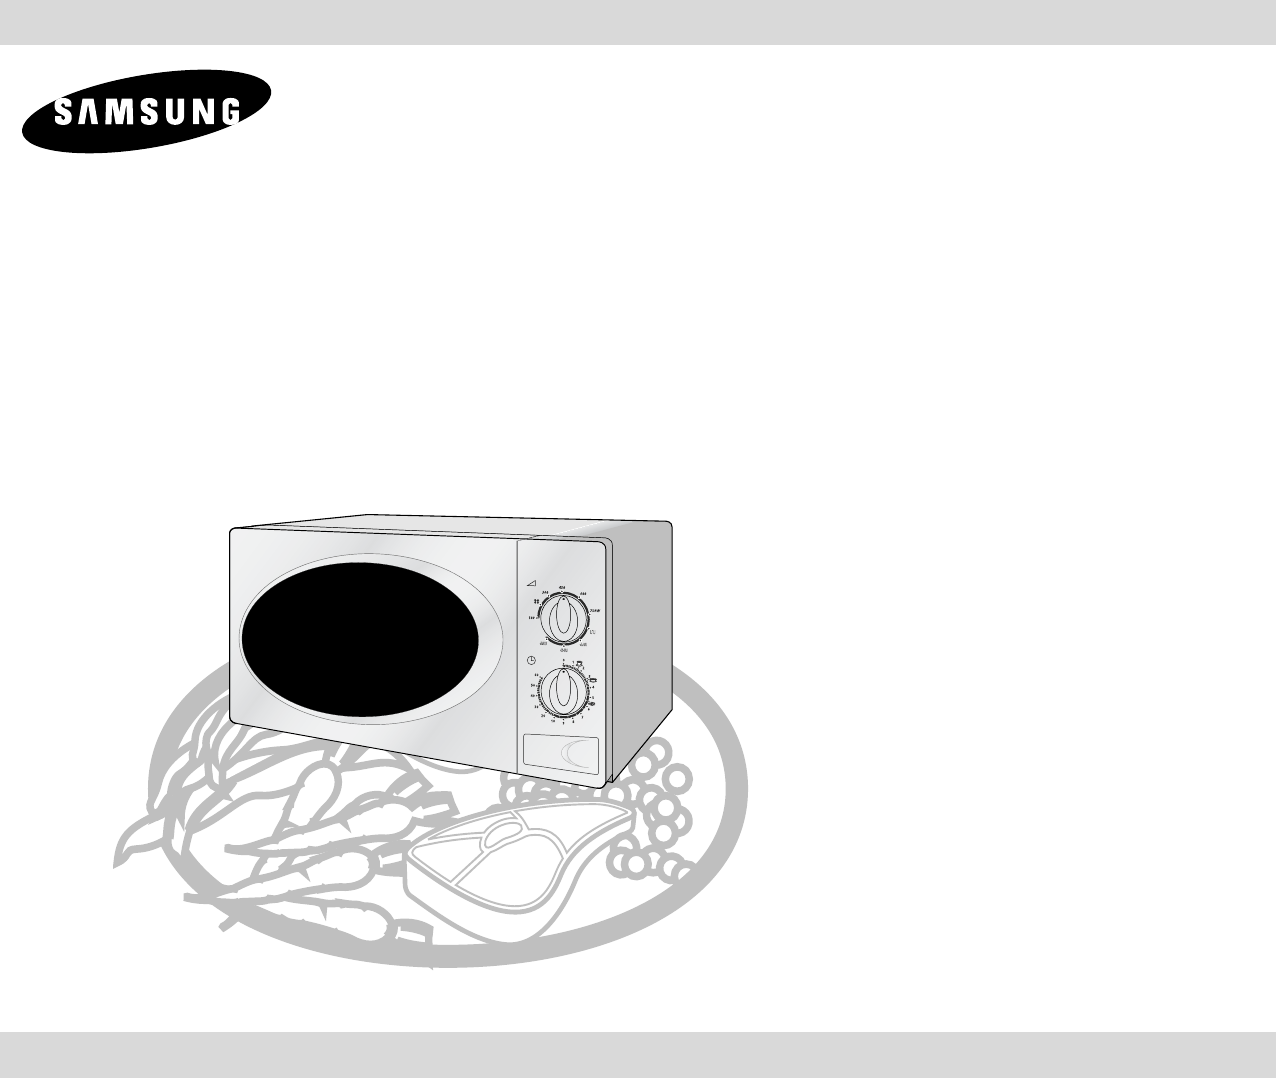 samsung microwave oven g2711n user guide manualsonline com rh kitchen manualsonline com Samsung 1816s Microwave Installation Template Samsung Microwave Repair Manual